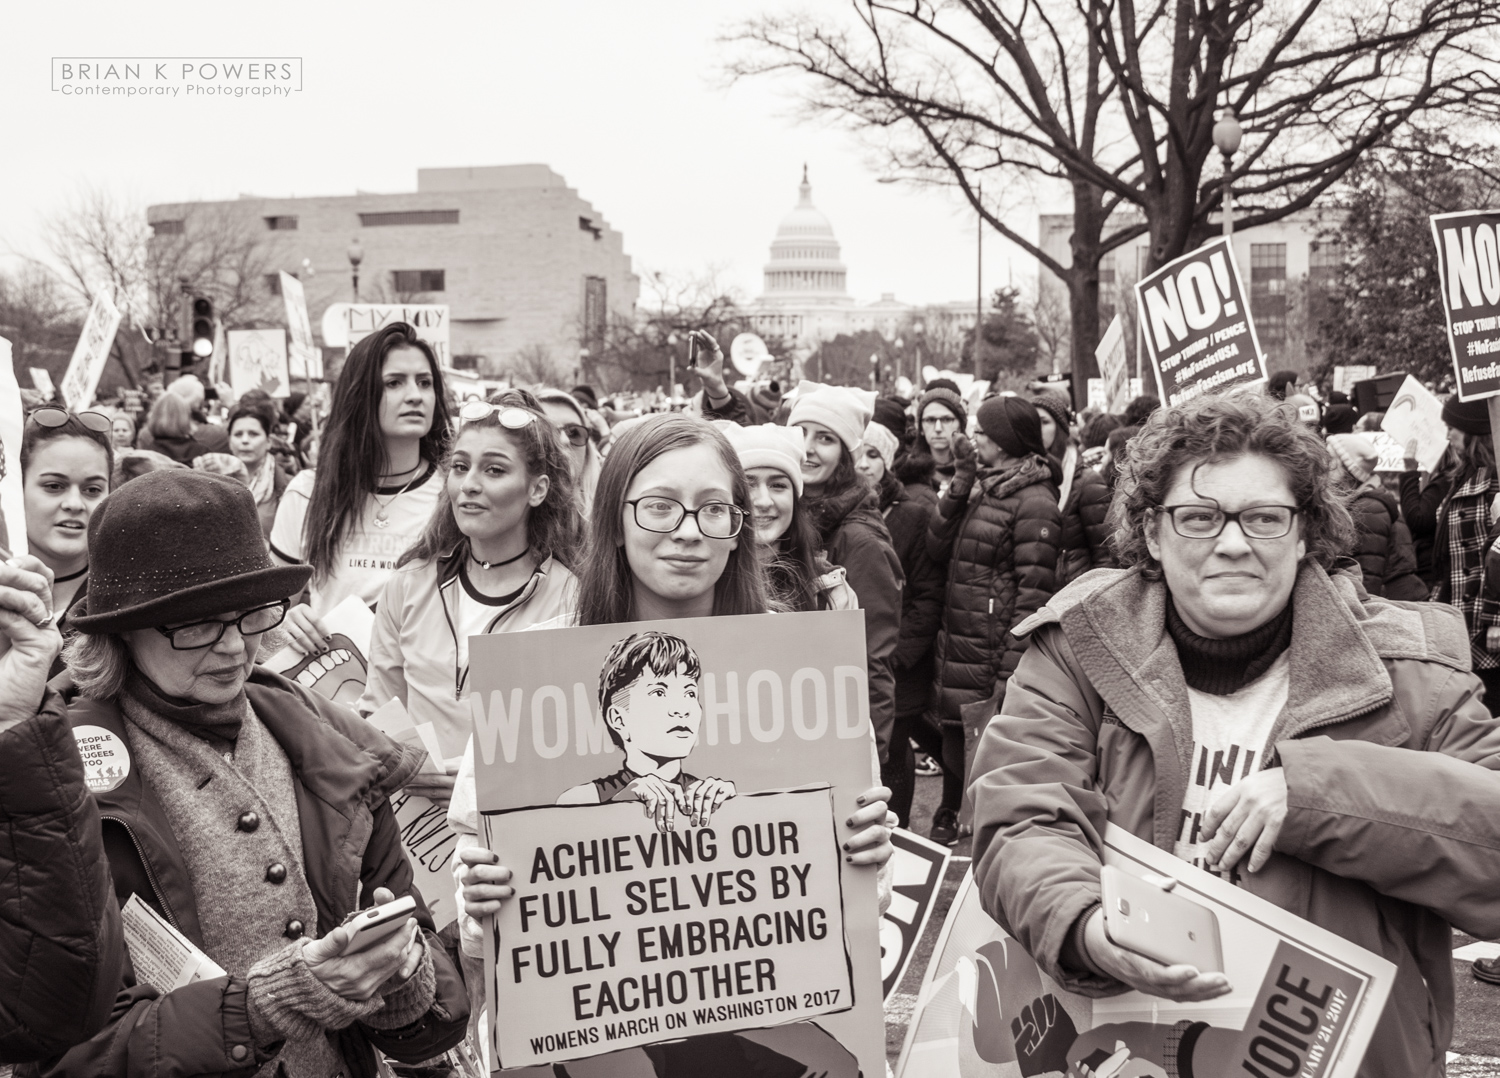 Womens-march-on-washington-2017-Brian-K-Powers-Photography-0113.jpg